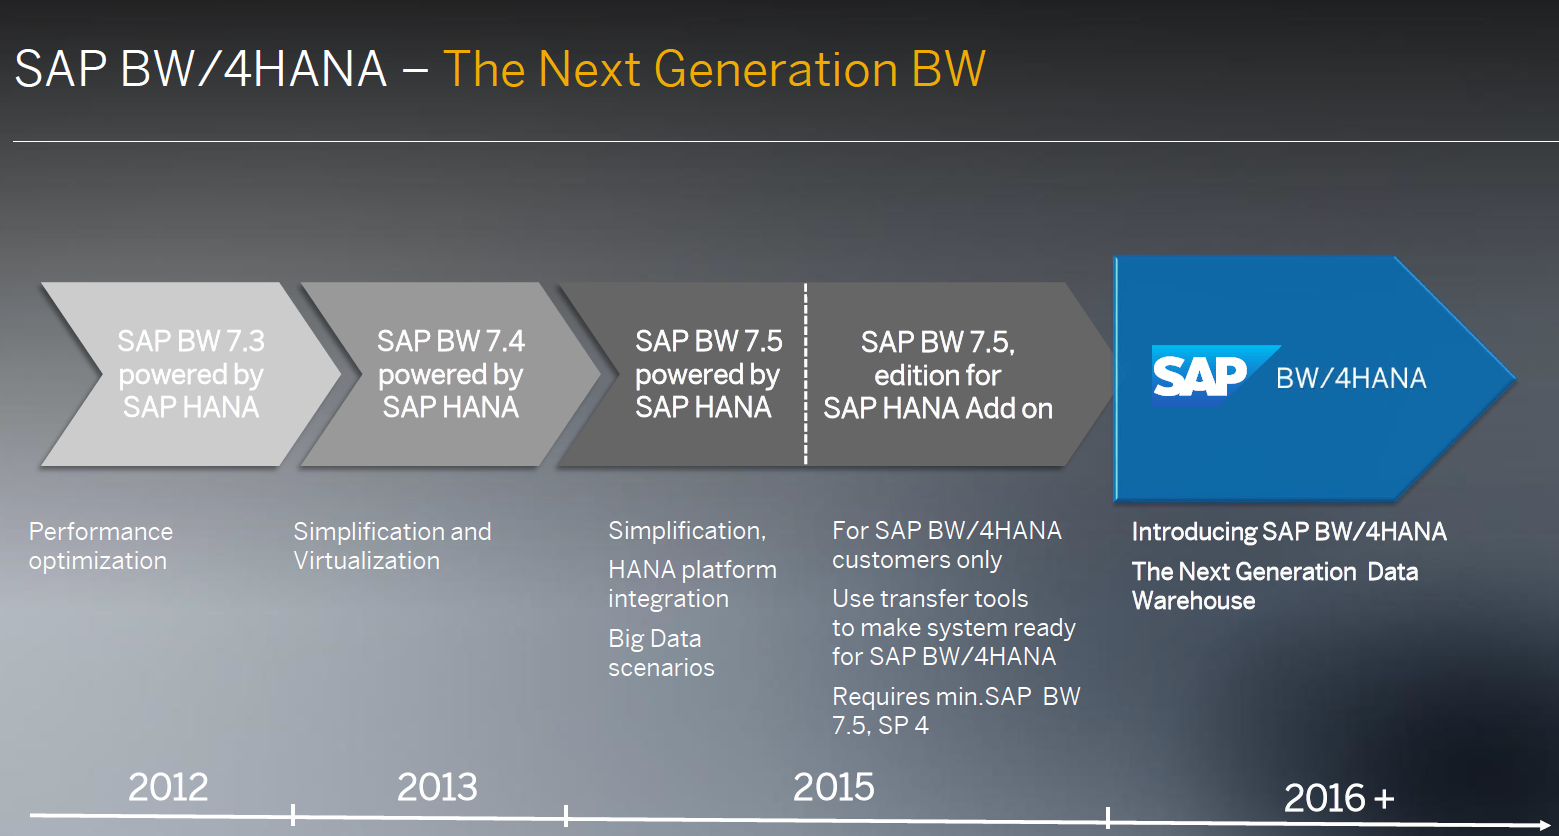 SAP BW/4HANA: Why is it Nextgen Data Warehouse? - Zarantech